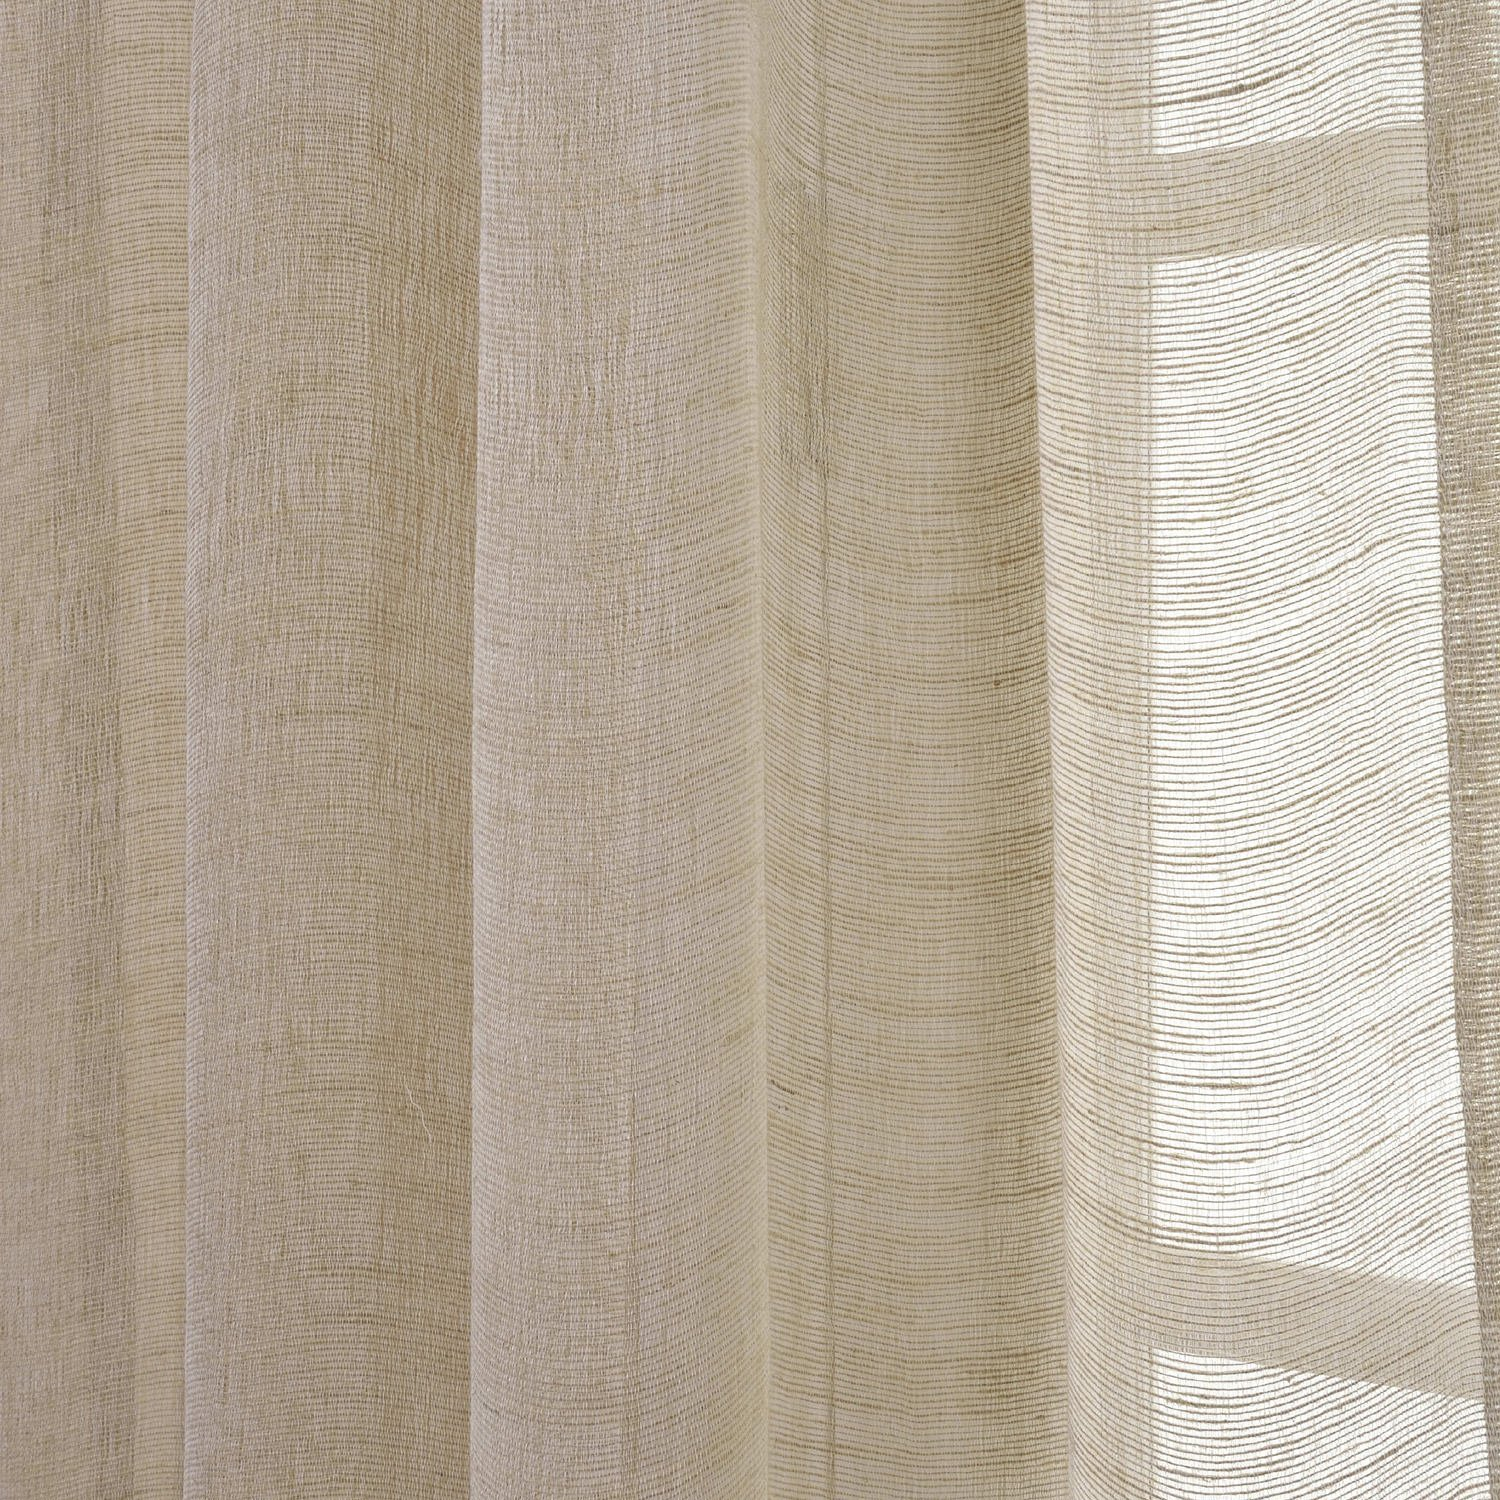 Half Price Drapes Linen Sheer Curtain Open Weave Natural Size 50 X96 Check Back Soon Blinq